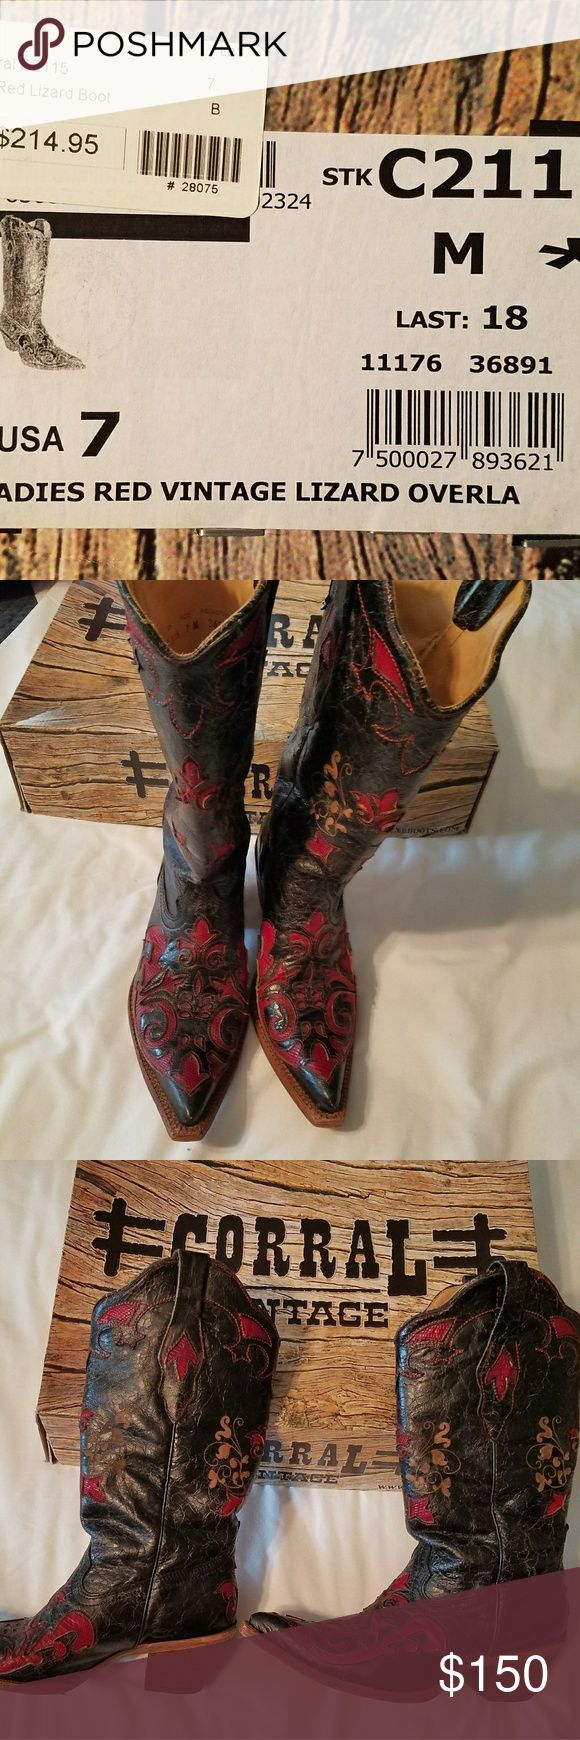 Corral Vintage boots Black leather with red lizard inlay. Gorgeous boots! Corral Shoes Heeled Boots